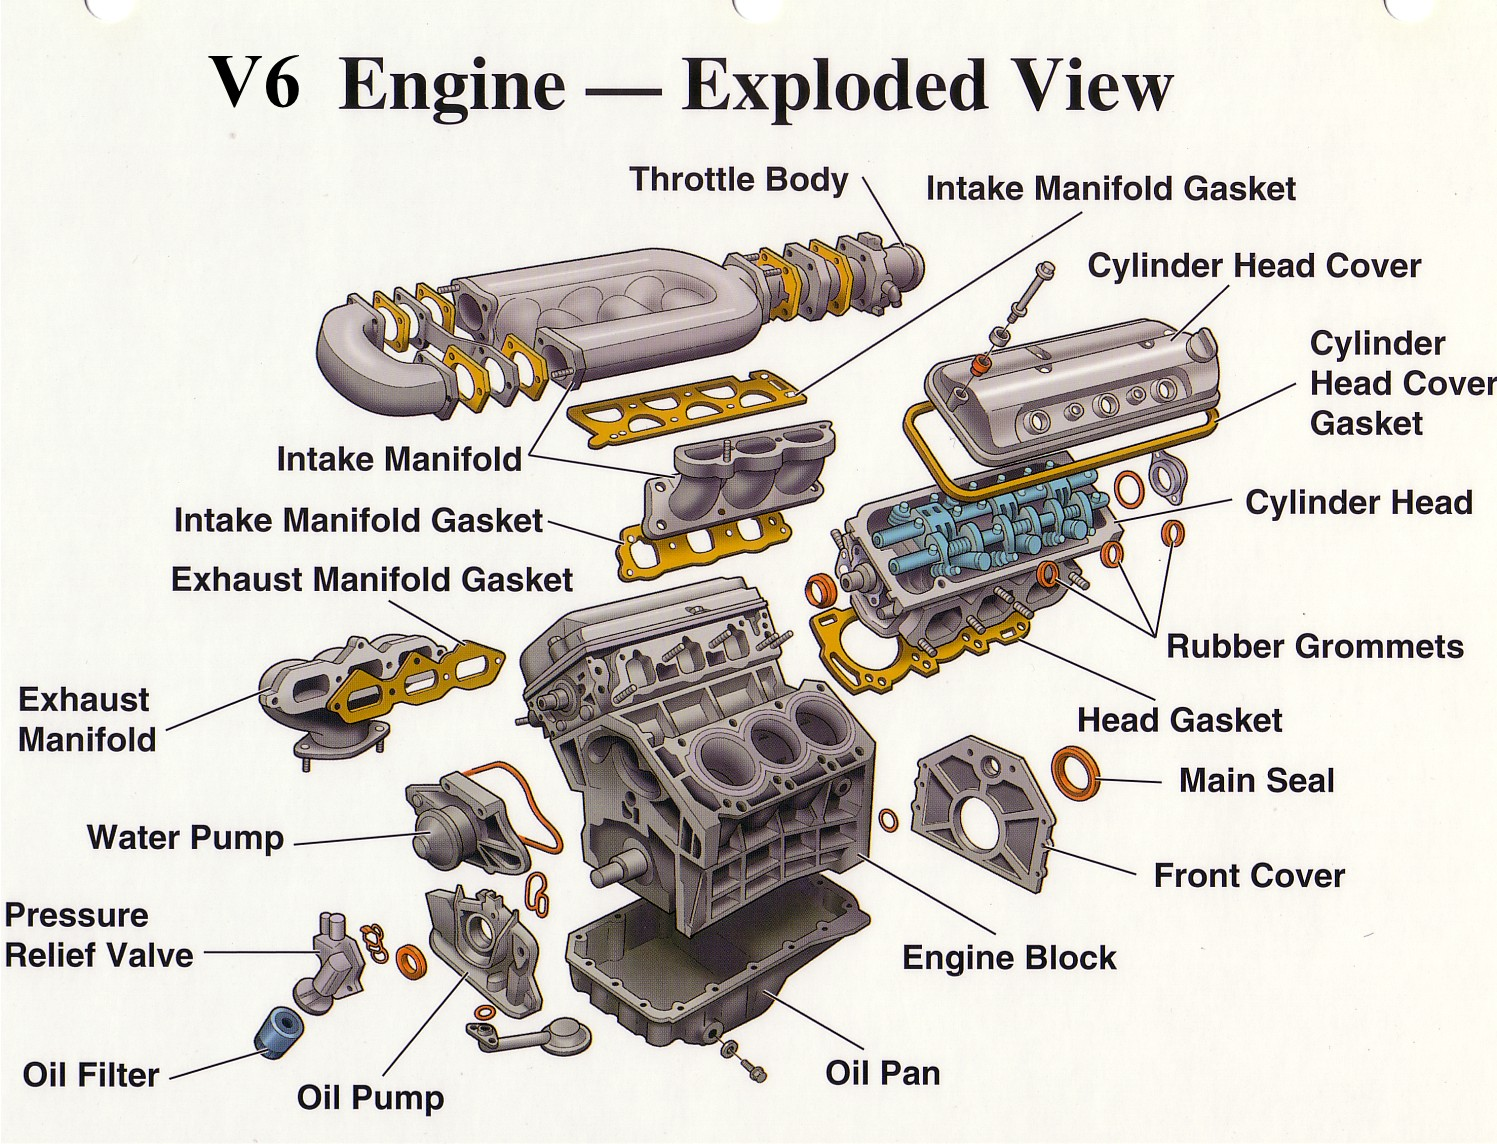 V6 Engine Exploded View Members Gallery Mechanical